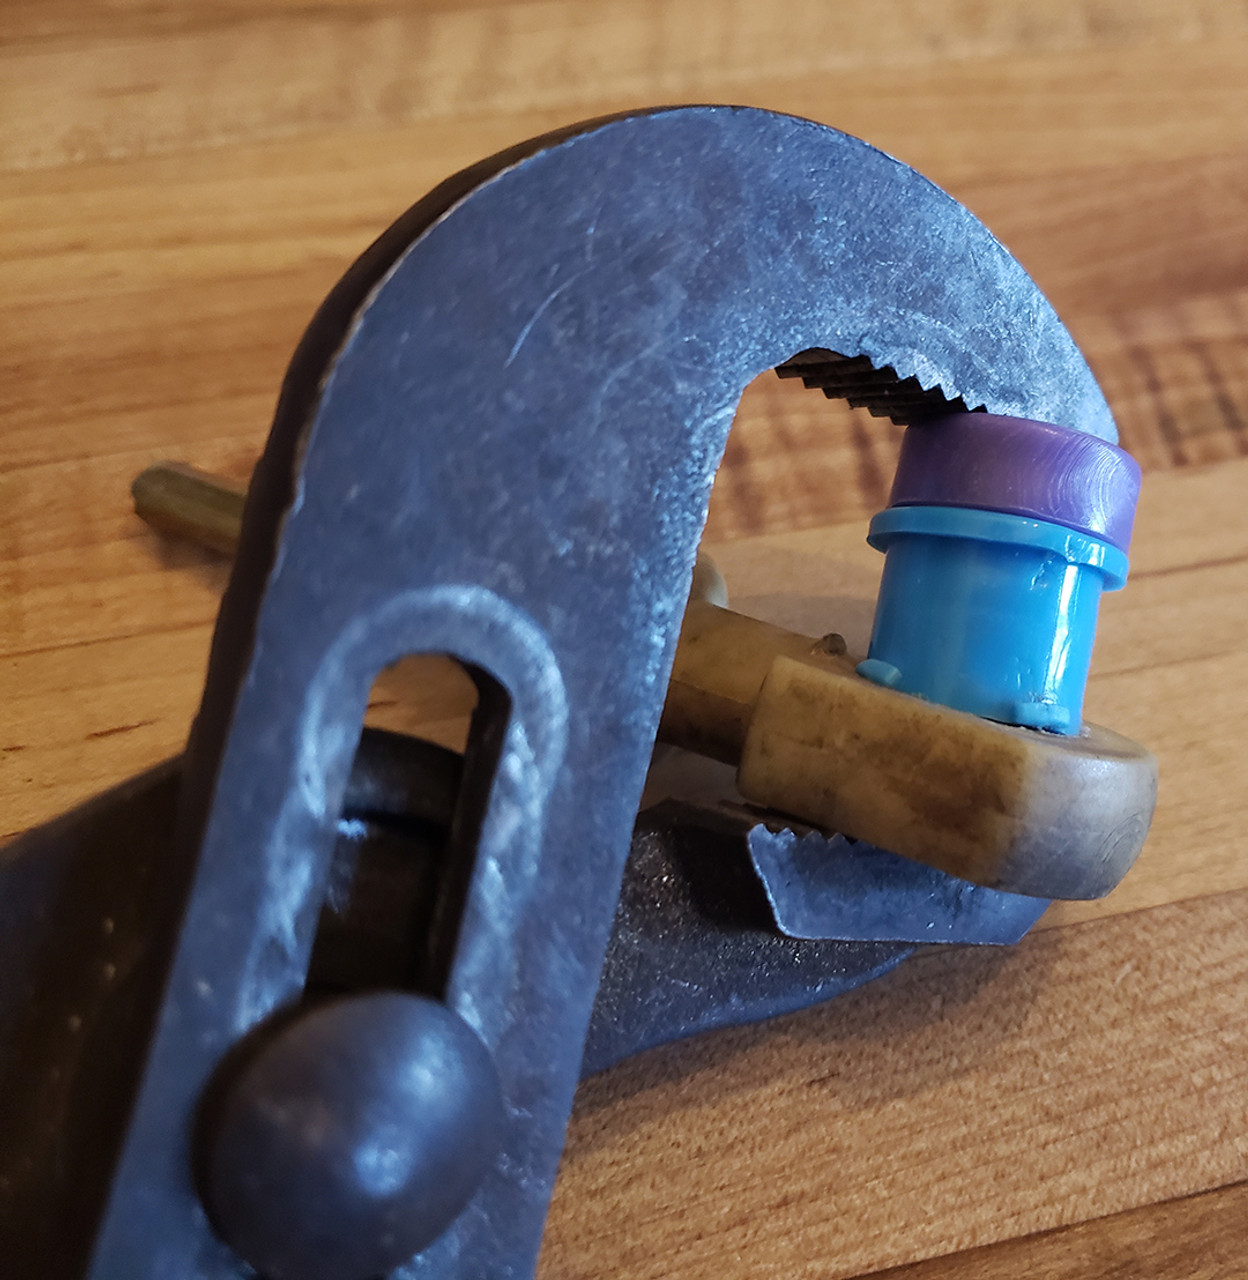 Step 3:  Place driver under thumb and bushing 'tang' or teeth edge down away from driver as shown. May use thumb or pliers as shown to push or press  bushing into place.